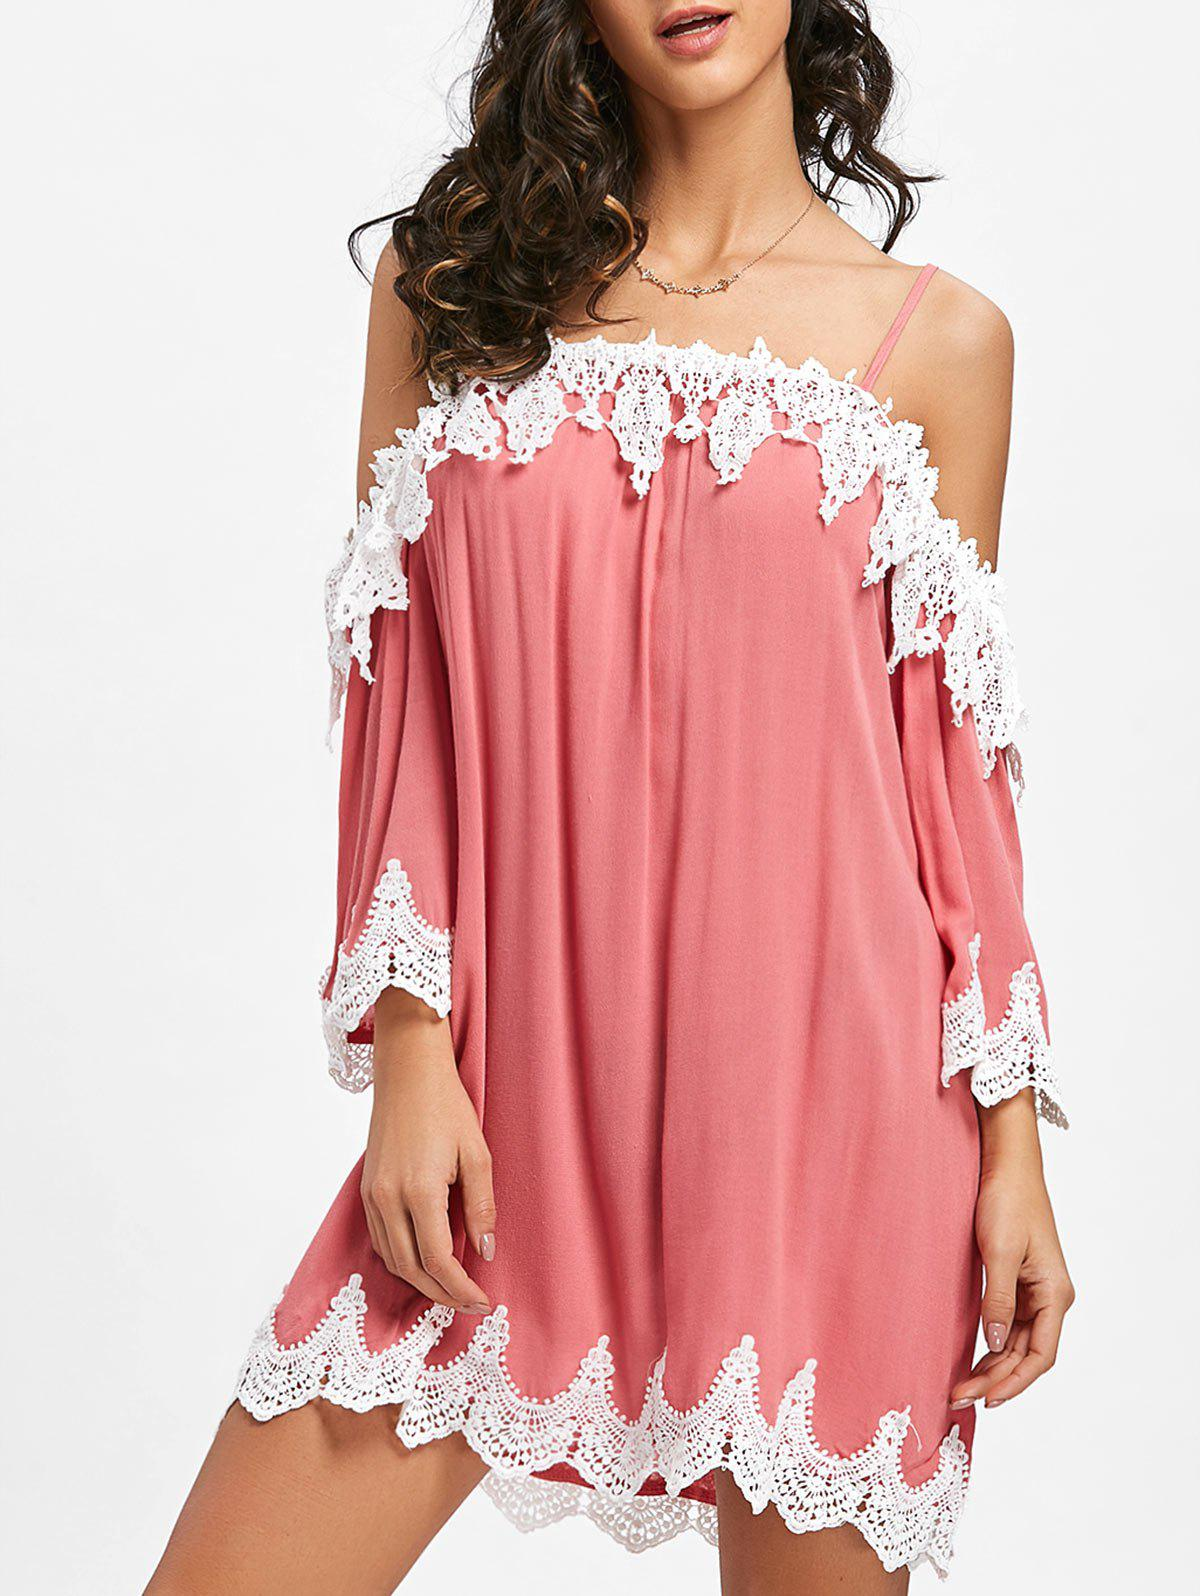 Crochet Trimmed Open Shoulder Mini Dress - PINK L